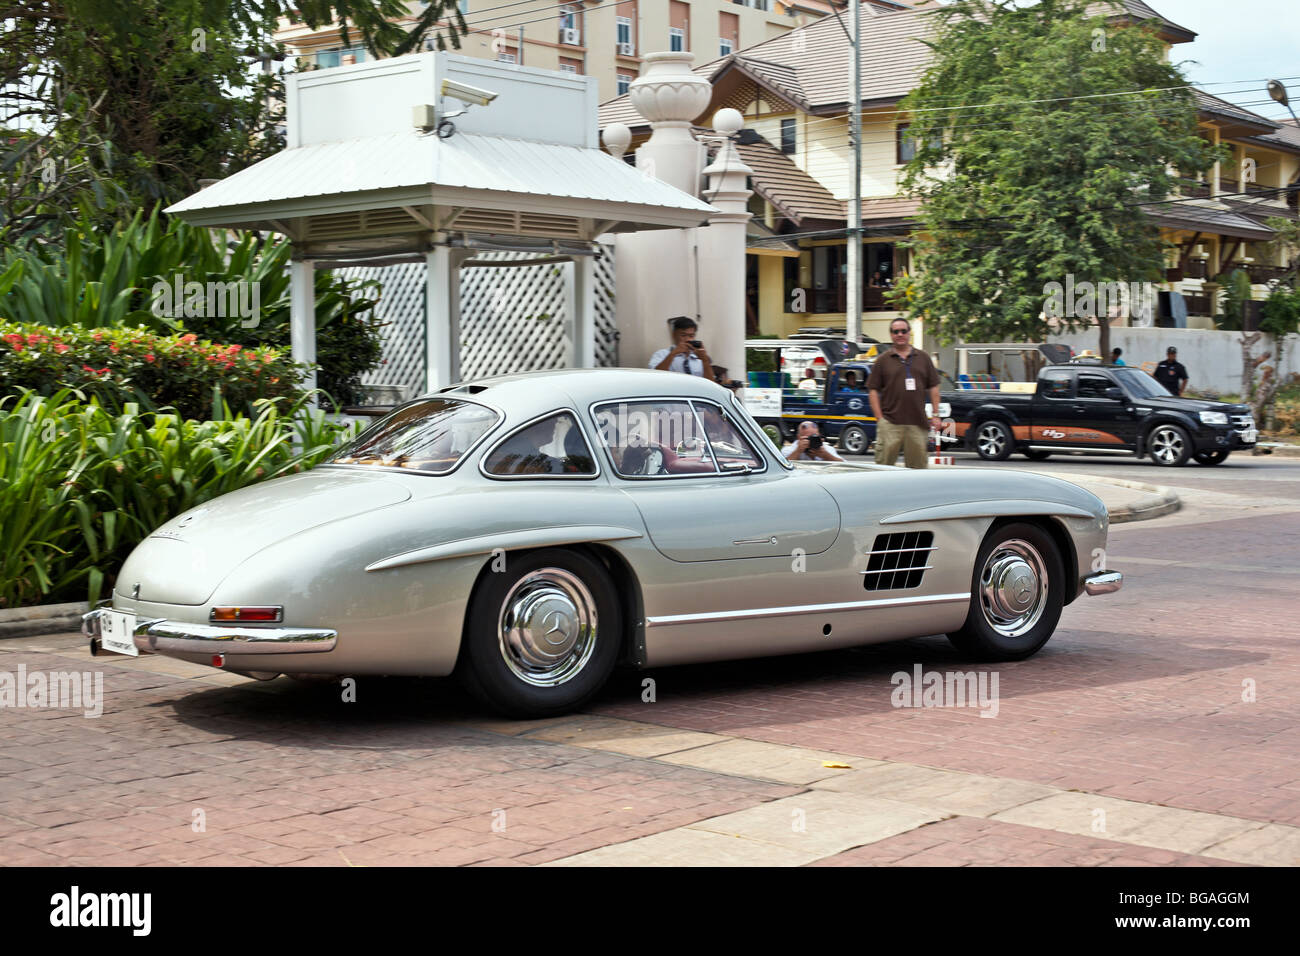 Mercedes benz 300sl gullwing vintage classic motorcar thailand s e asia stock image